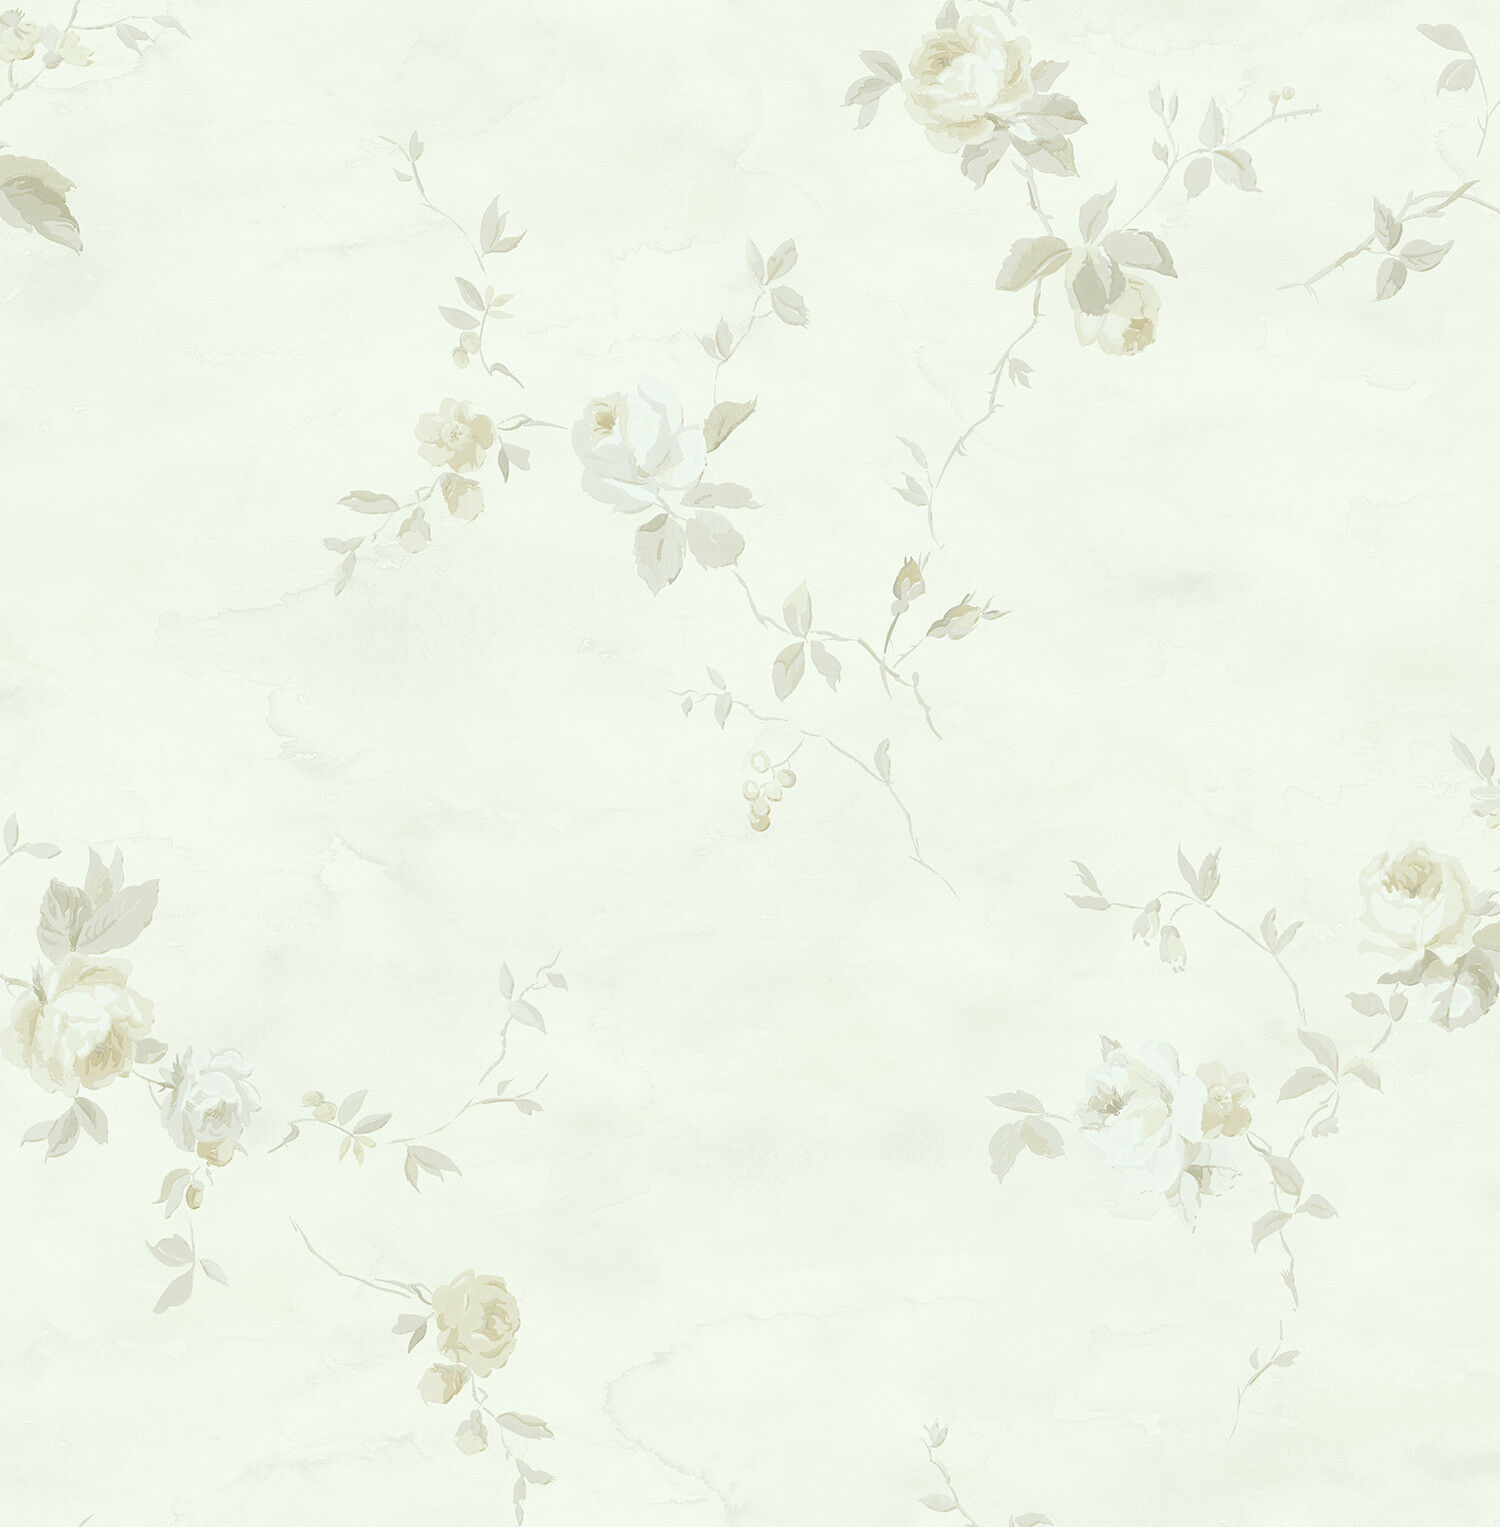 Floral Wallpaper Silver Gold Green Abstract Watercolor Samples